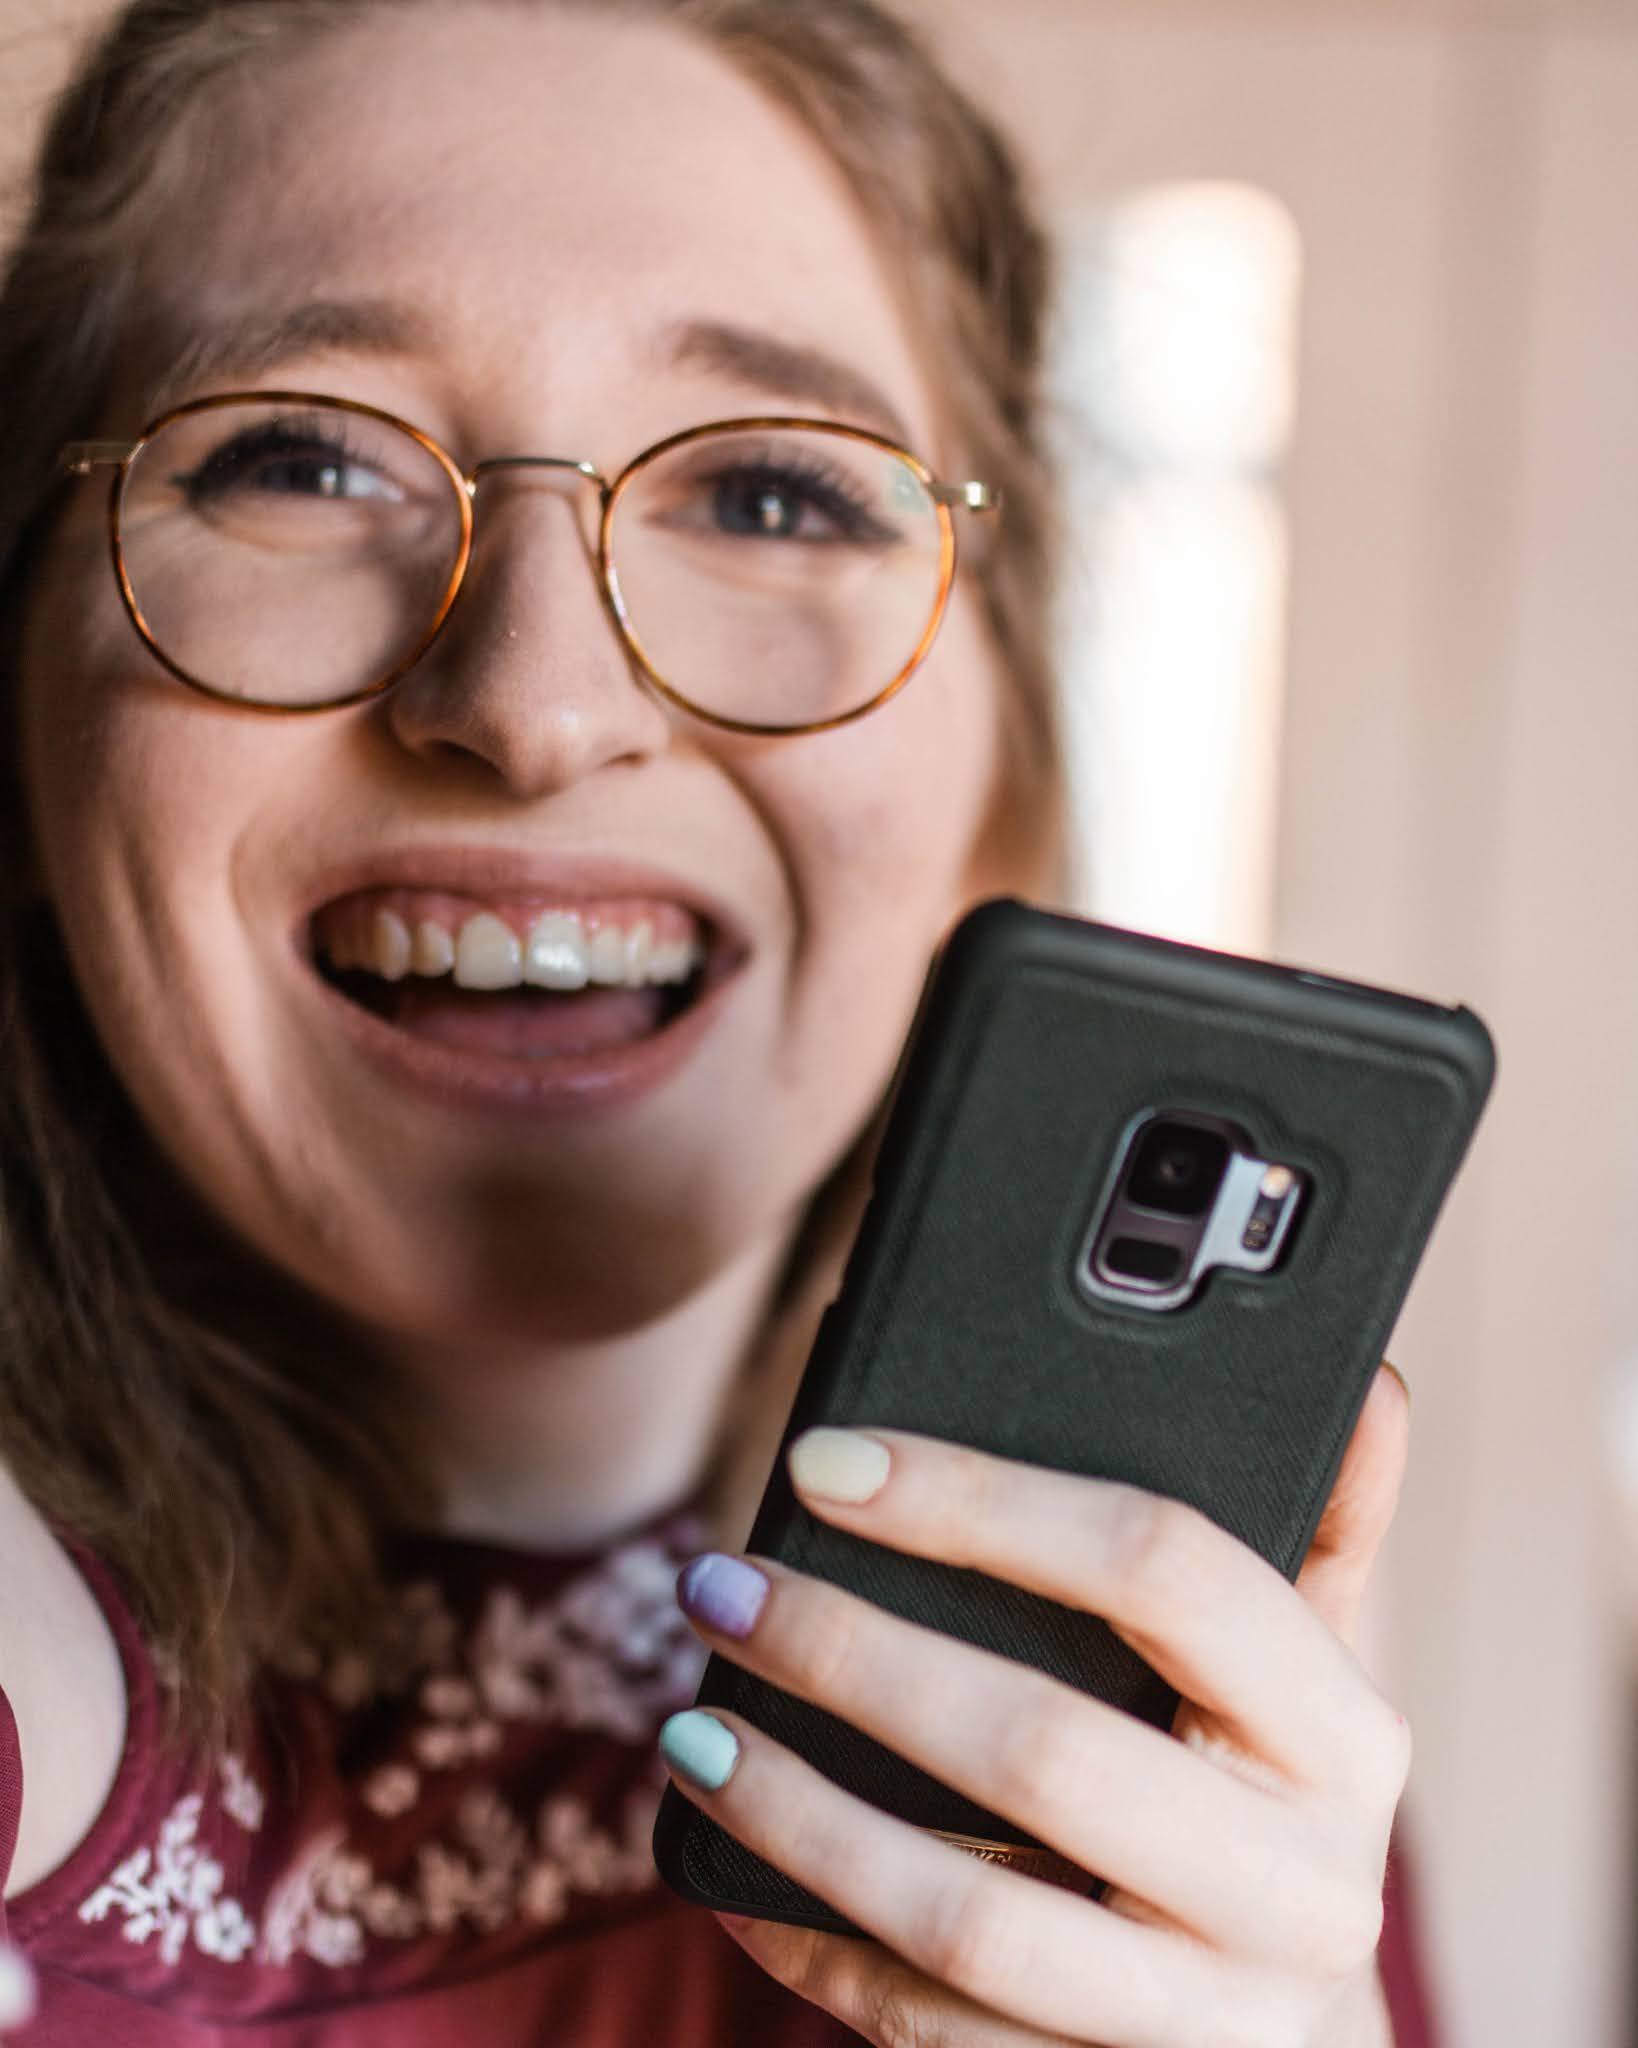 girl smiling and holding phone